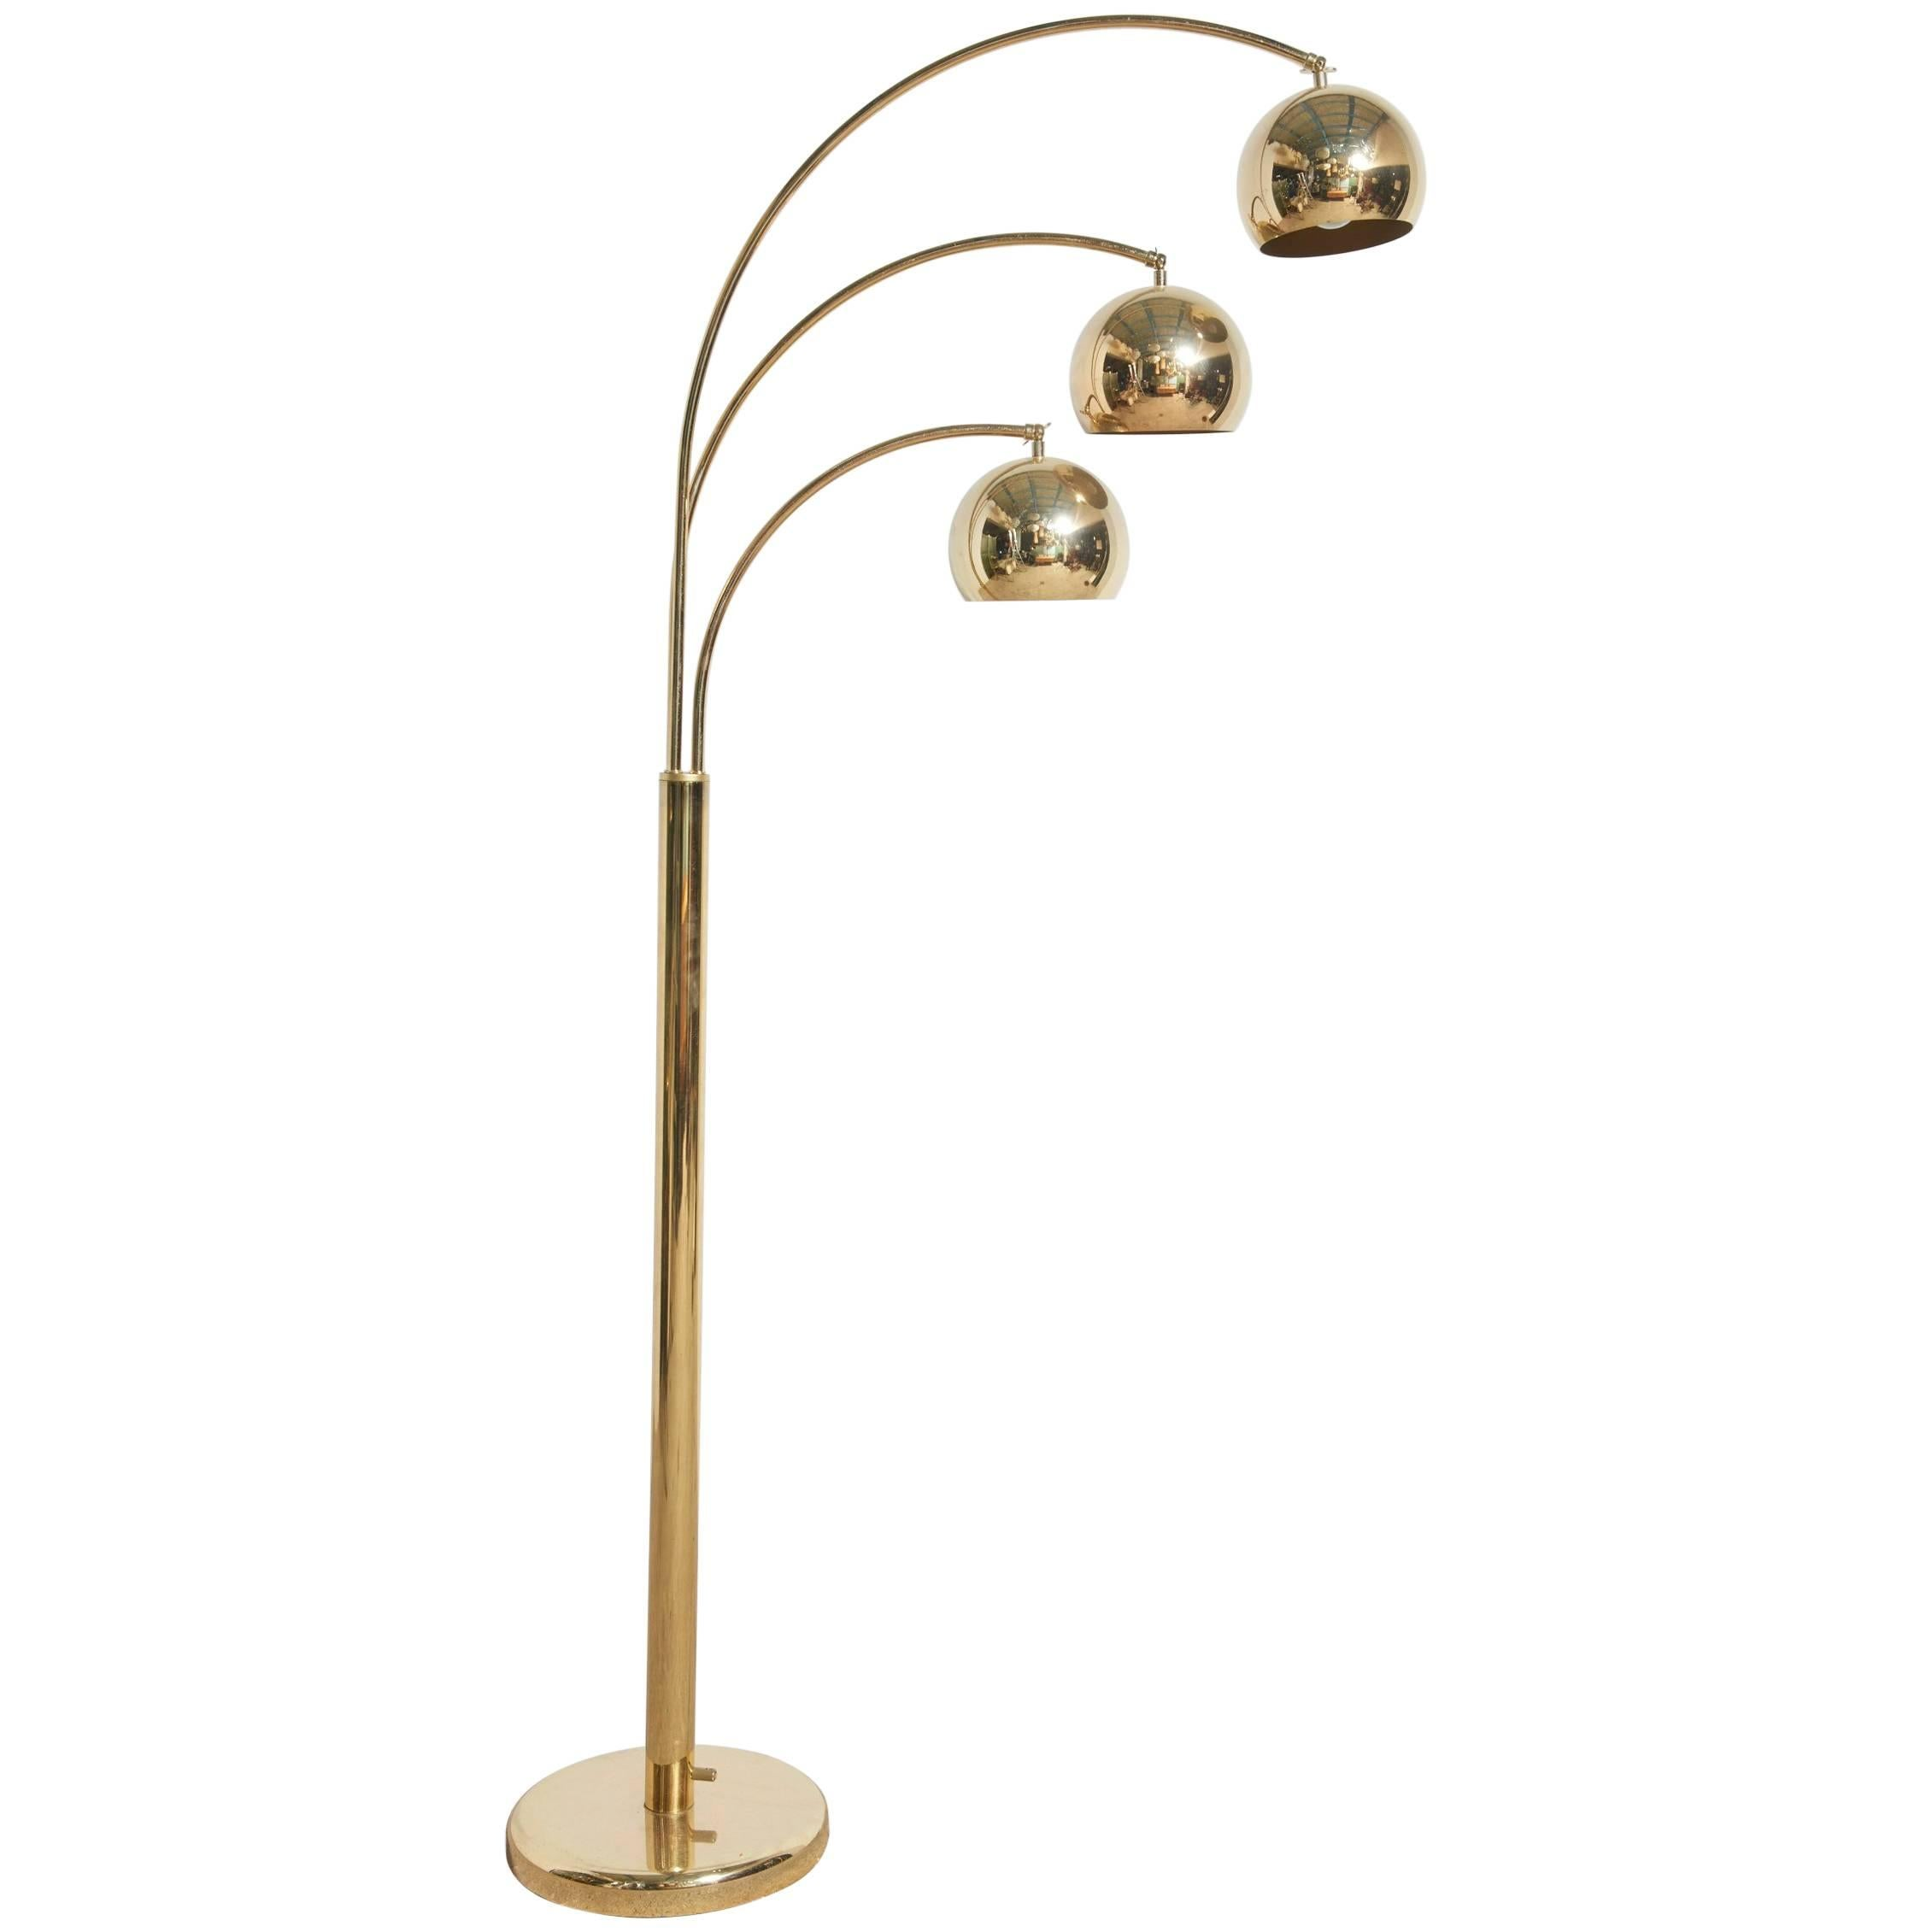 Brass Arc Floor Lamp with Three Adjustable Arms by Goffredo ...